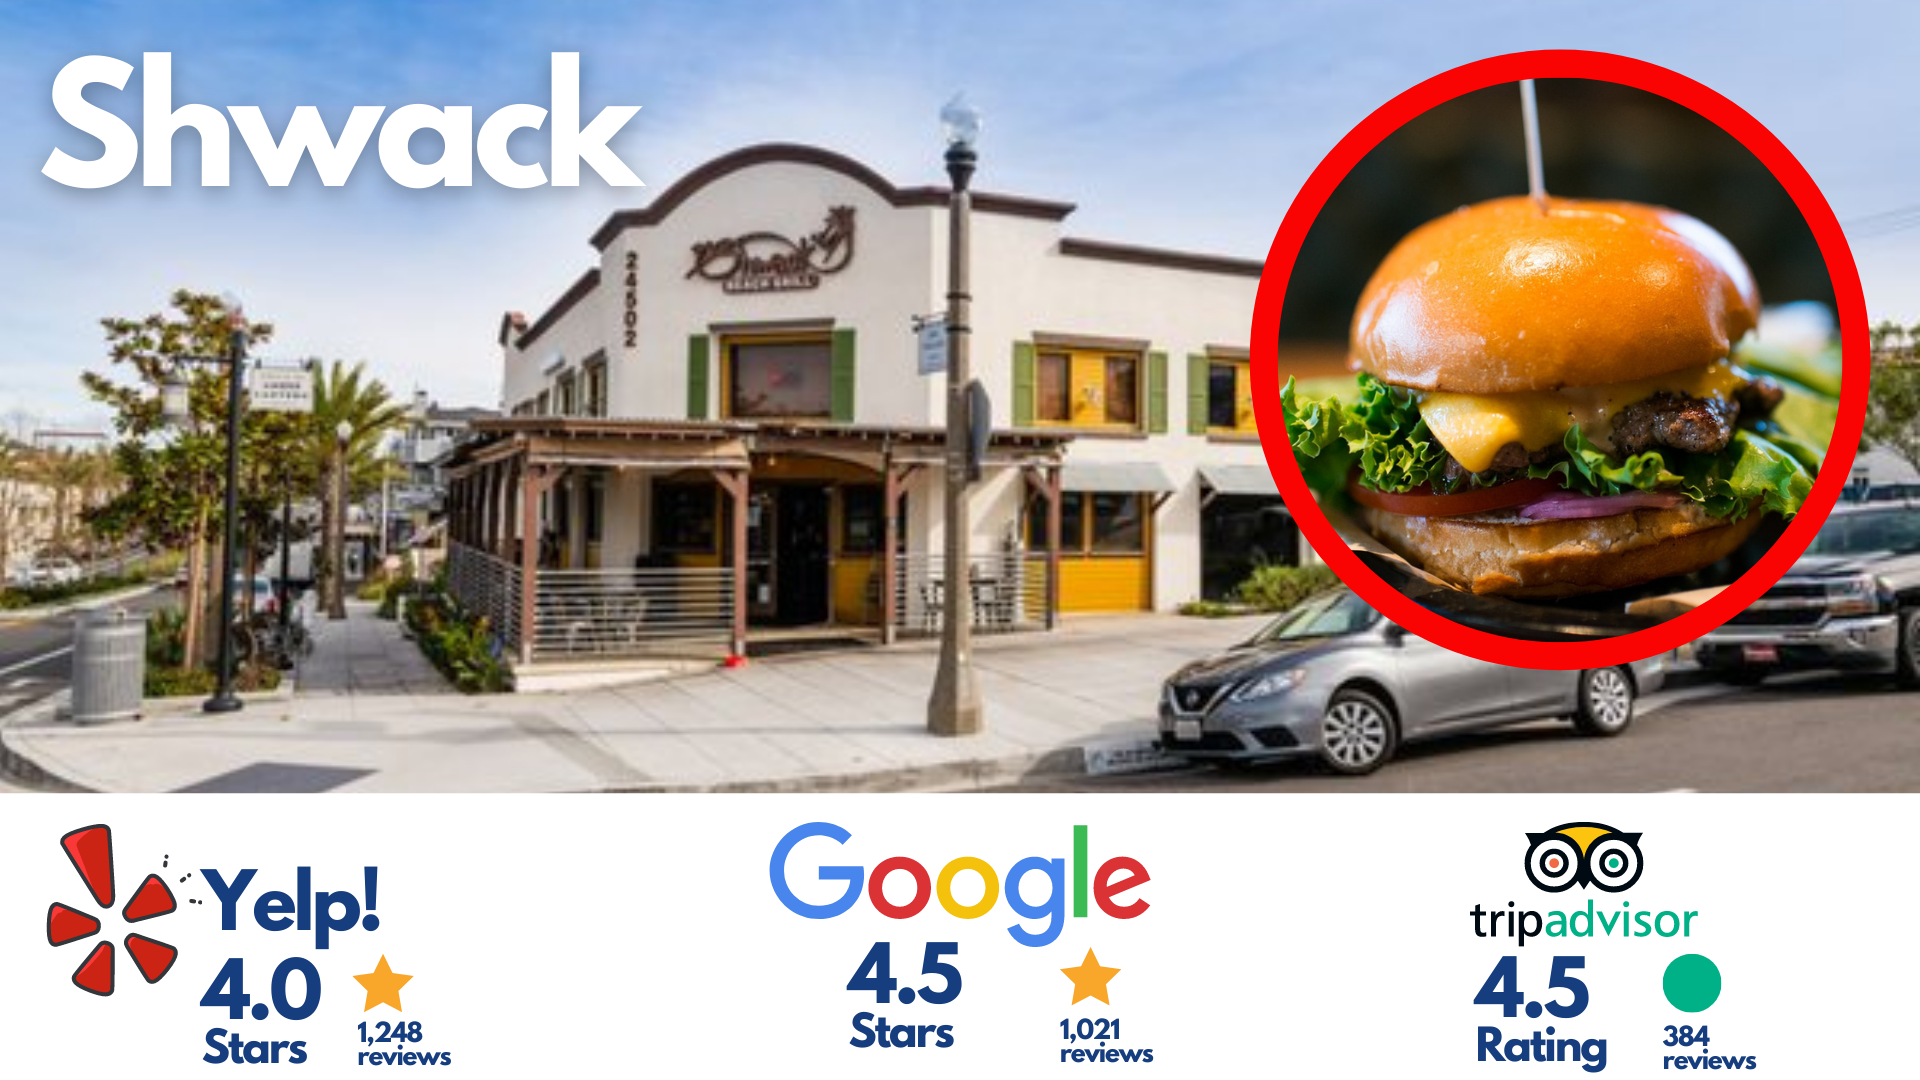 the shwack beach grill dana point california (image of the exterior of the shwack restaurant, picture of a burger, yelp google and tripadvisor ratings in the bottom portion